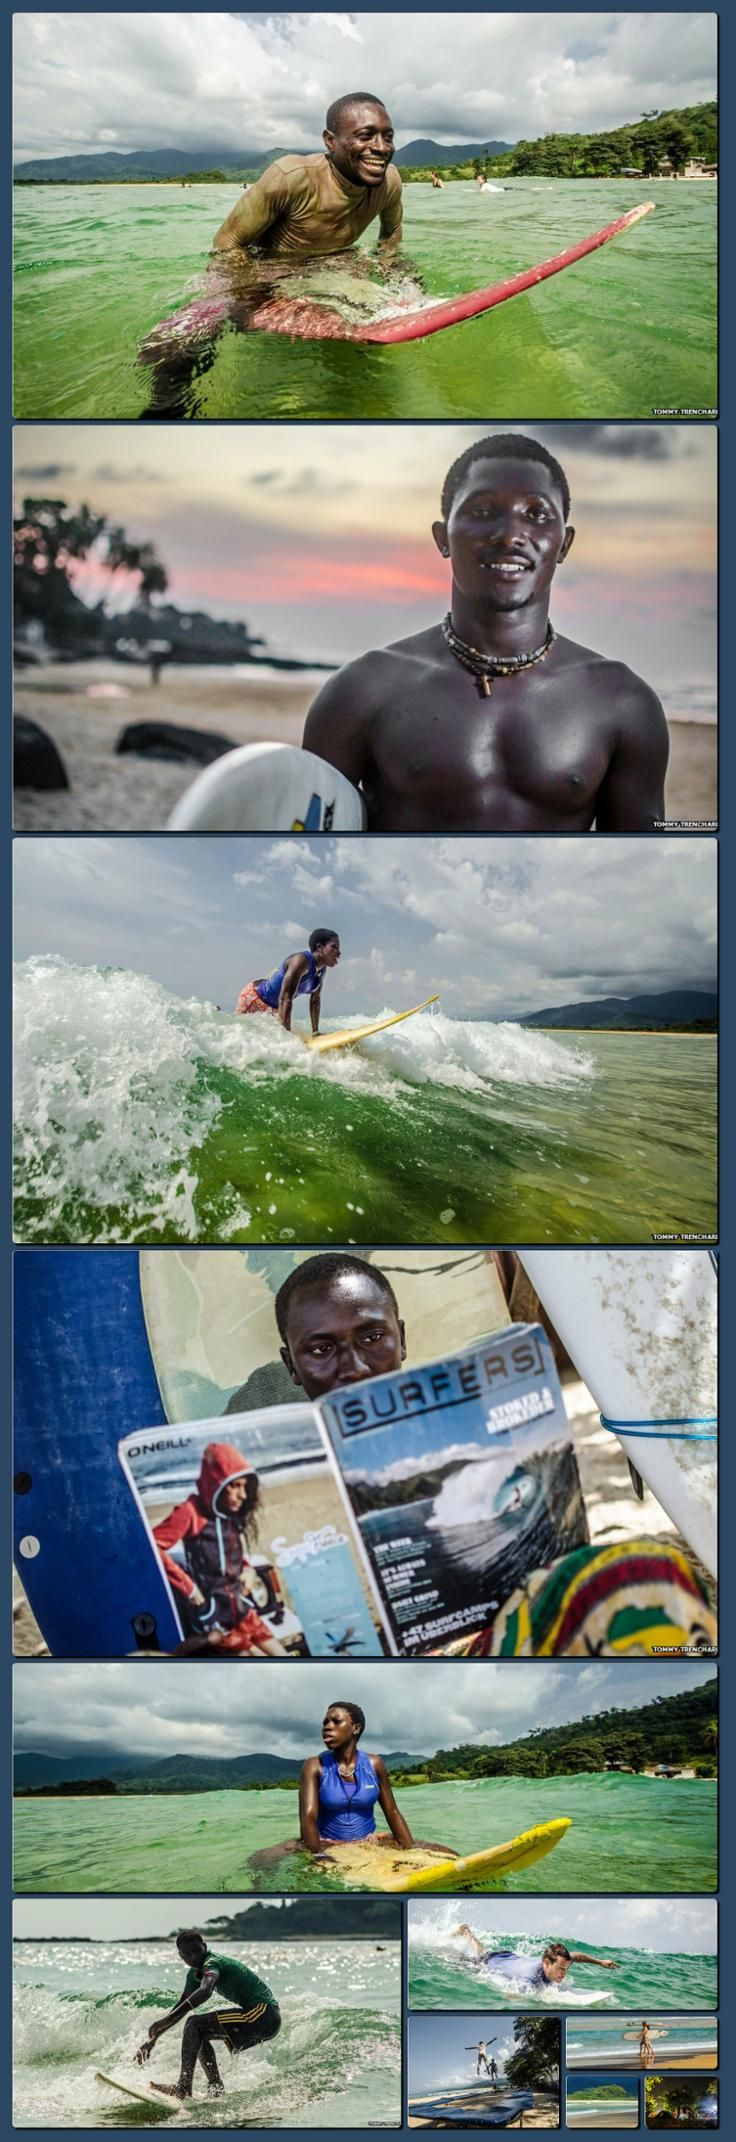 BBC News - In pictures: Sierra Leone's surf club [Collage made with one click using http://pagecollage.com] #pagecollage   http://hoog.li/g?g=http://www.bbc.co.uk/news/in-pictures-25635626